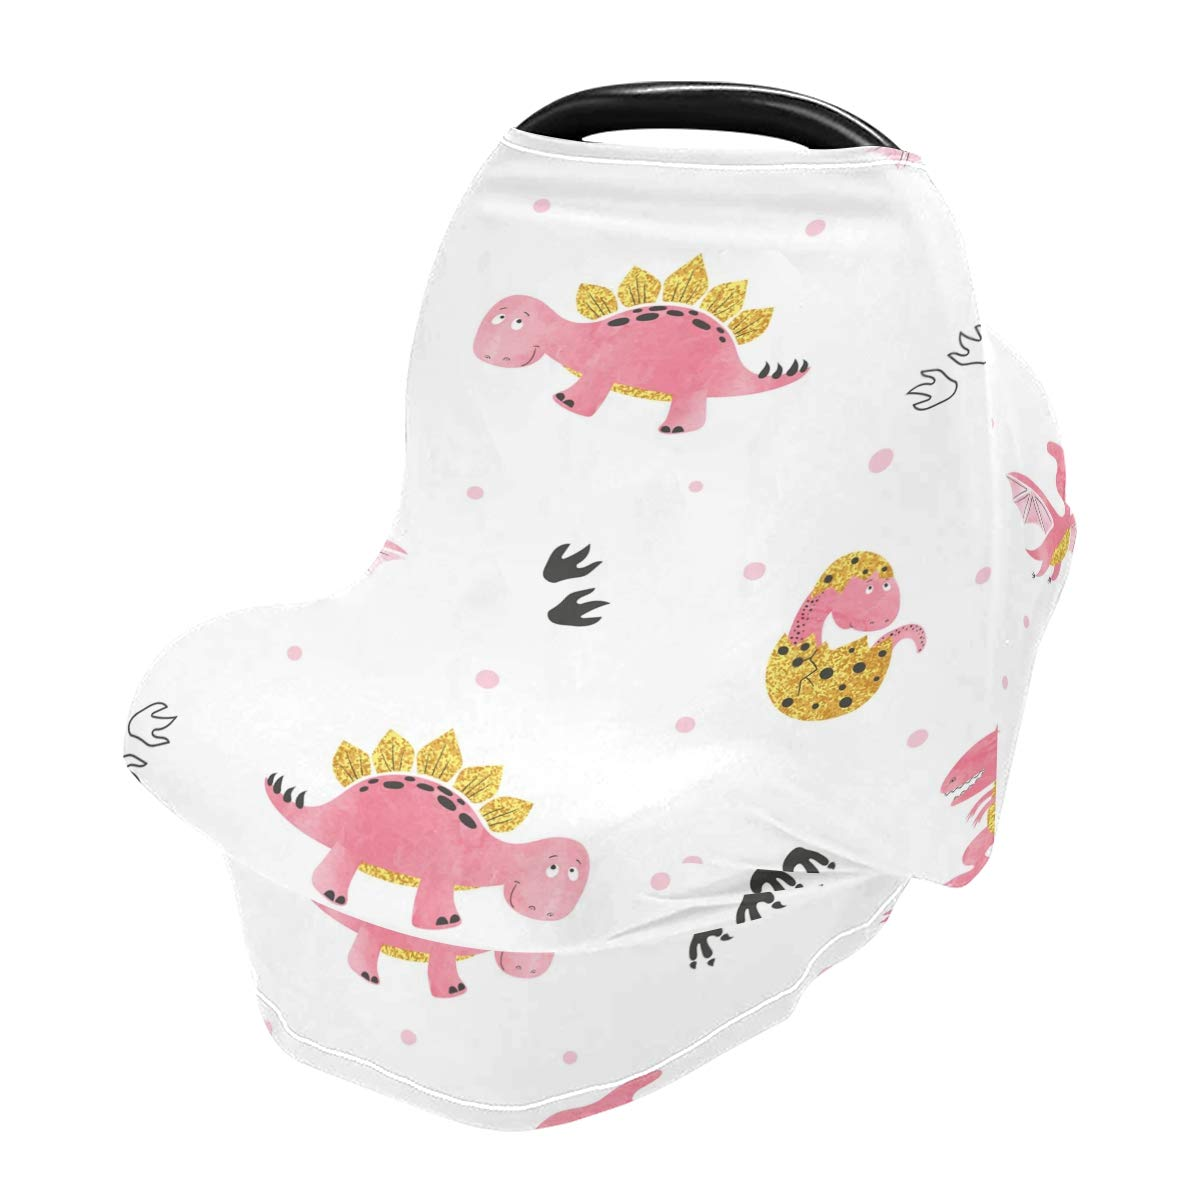 Cute Cartoon Dinosaurs Car Seat Covers for Babies Infant, Nursing Cover Breastfeeding Scarf, Stroller Cover, Carseat Canopy for Boys Girls